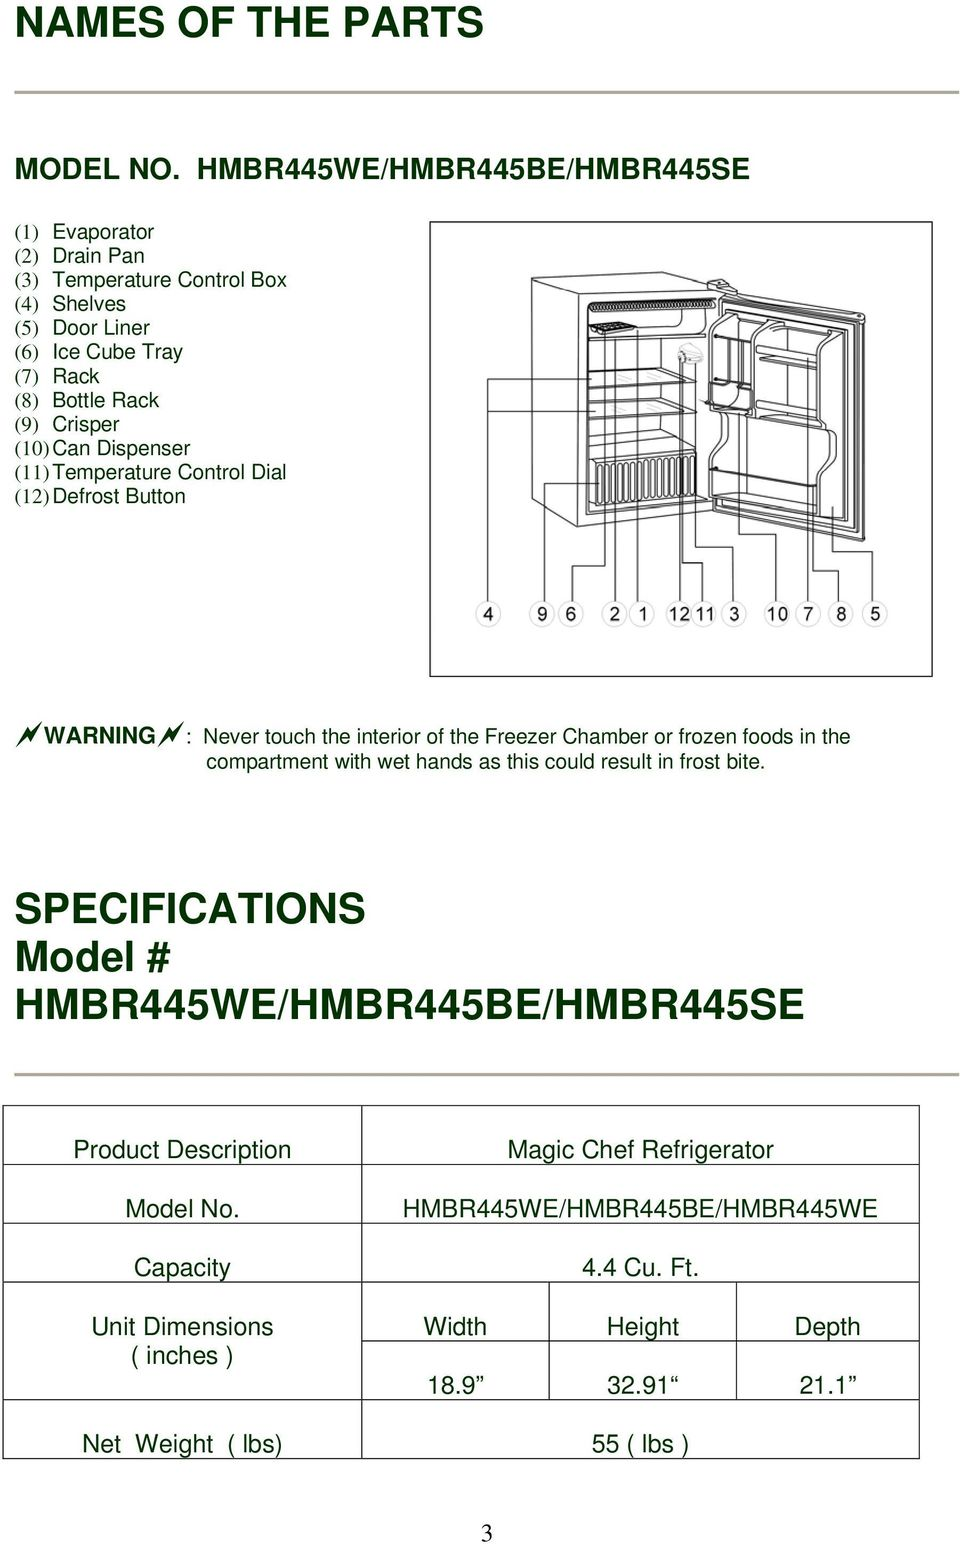 Chevrolet Sonic Repair Manual: Synchronizers Cleaning and Inspection